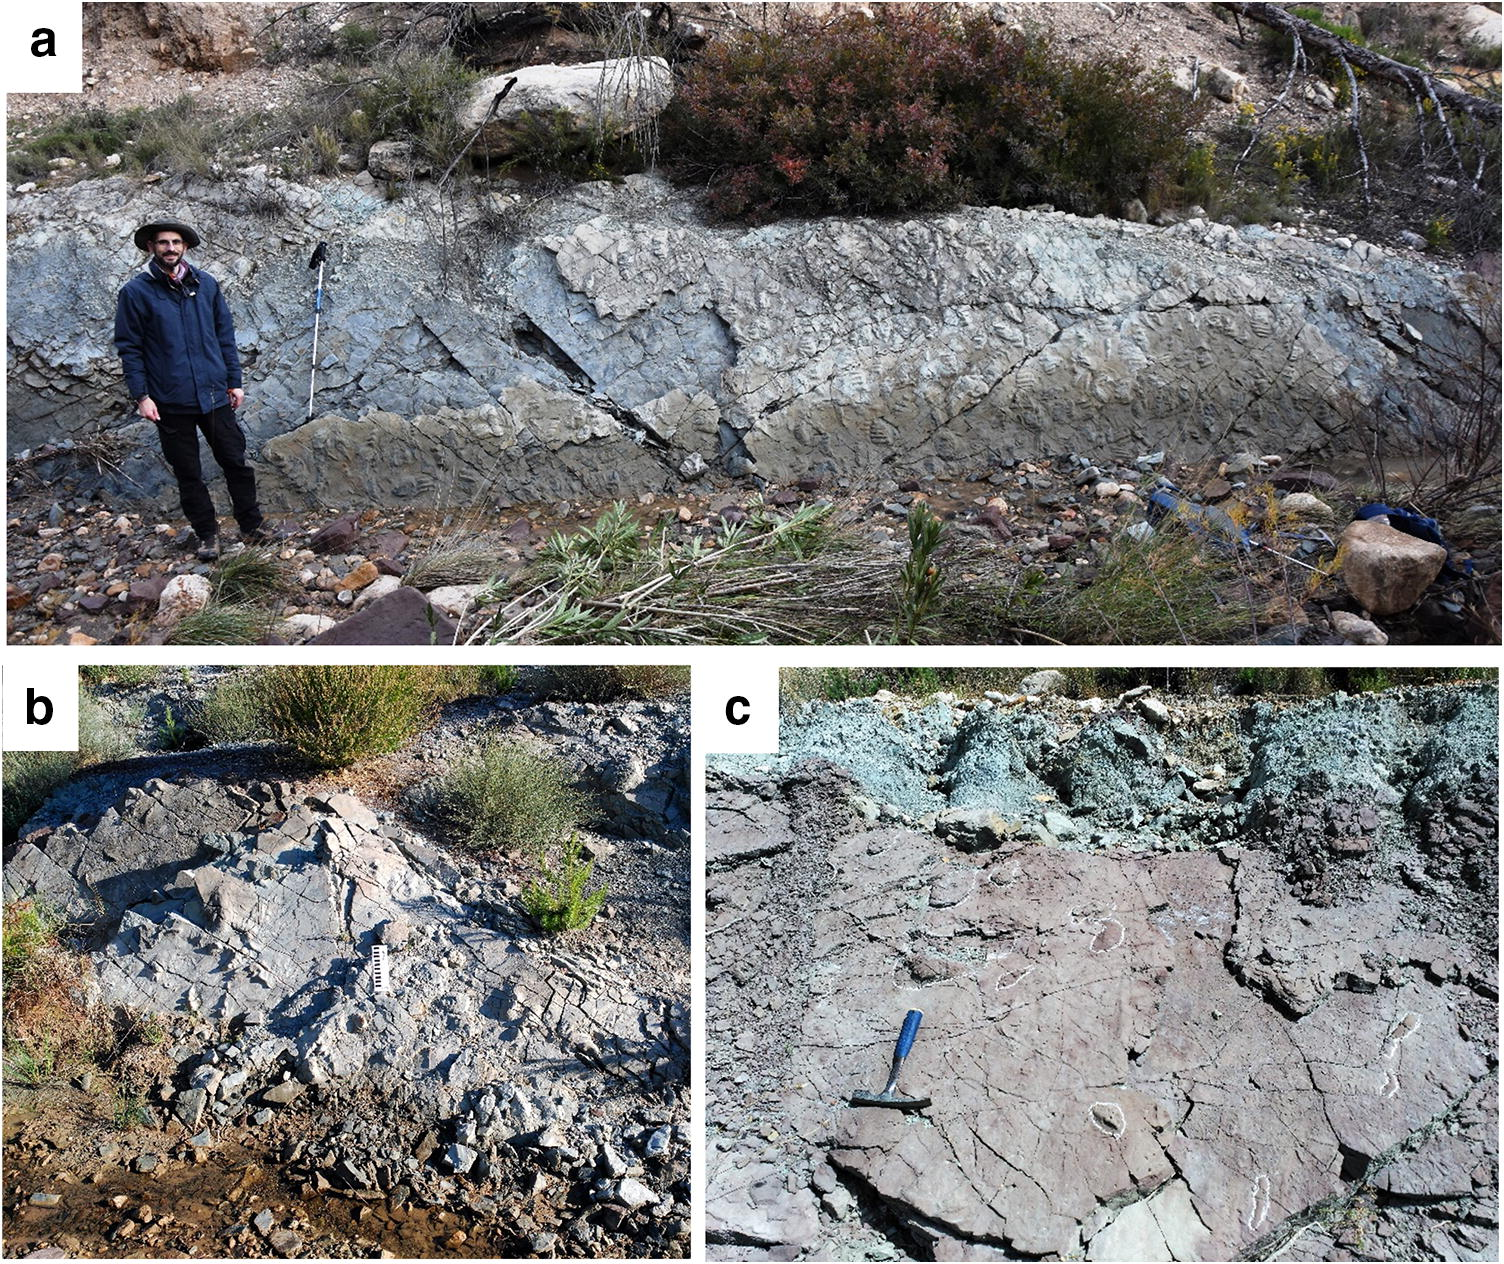 Swimming Reptile Prints From The Keuper Facies Carnian